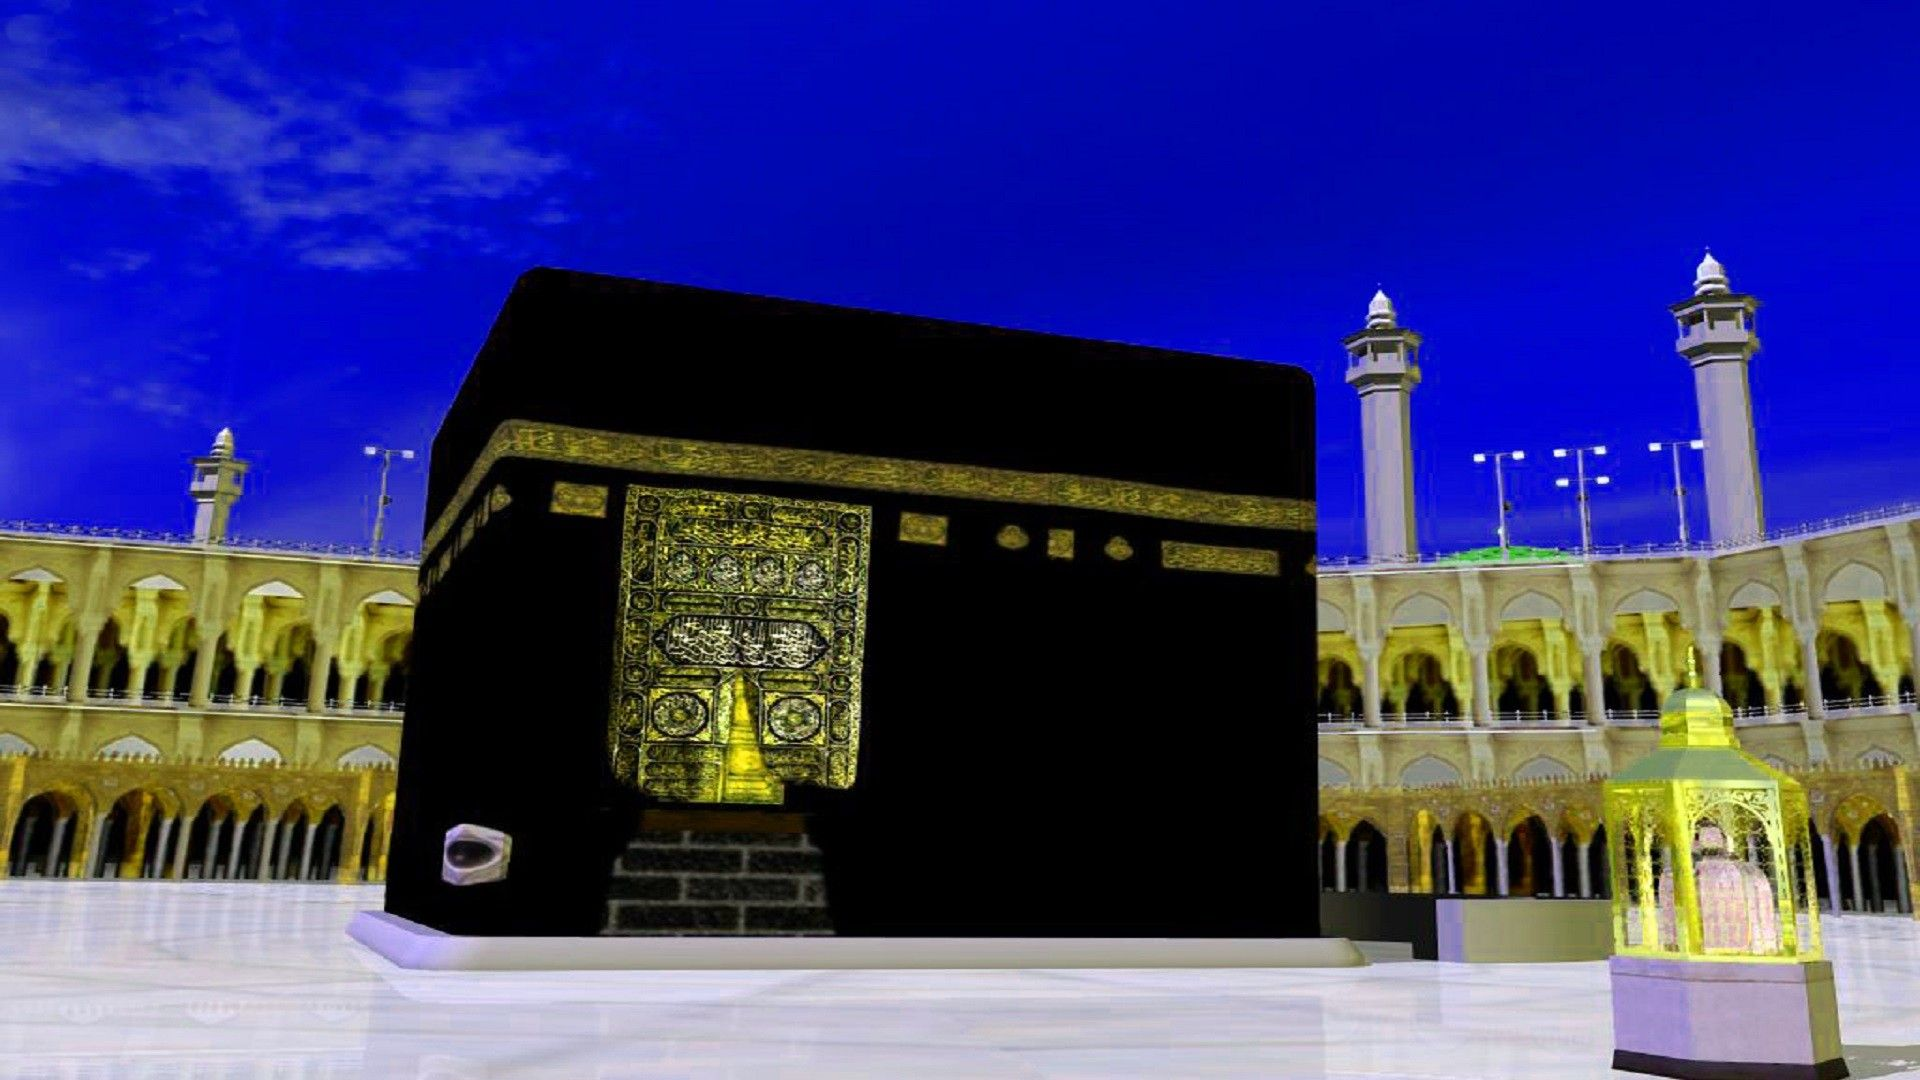 Mecca Madina Hd Wallpapers 1366x768 Group 57 Download For Free Islamic Wallpaper Mecca Mecca Wallpaper